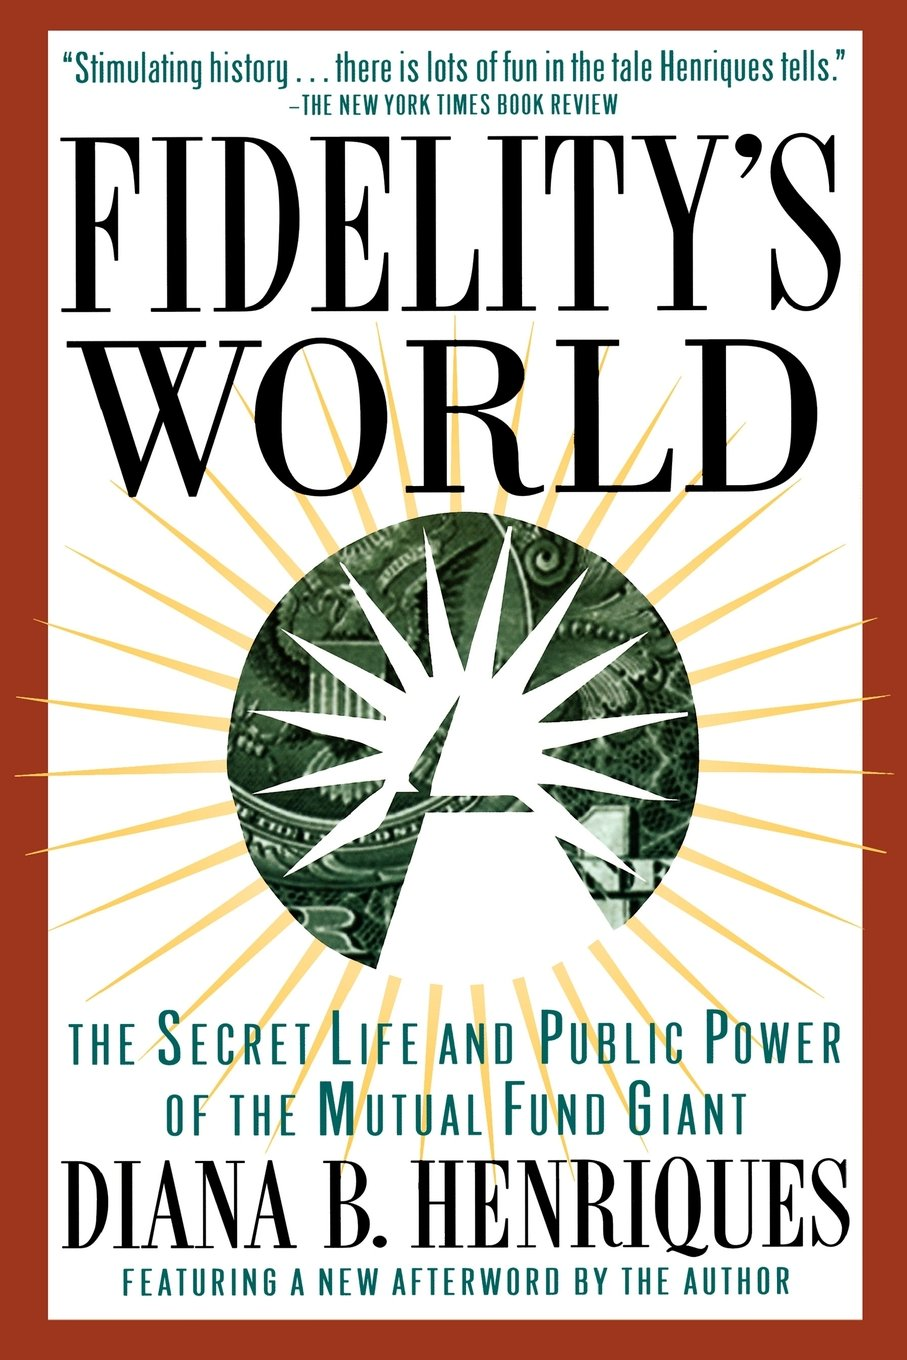 Fidelity's World: The Secret Life and Public Power of the